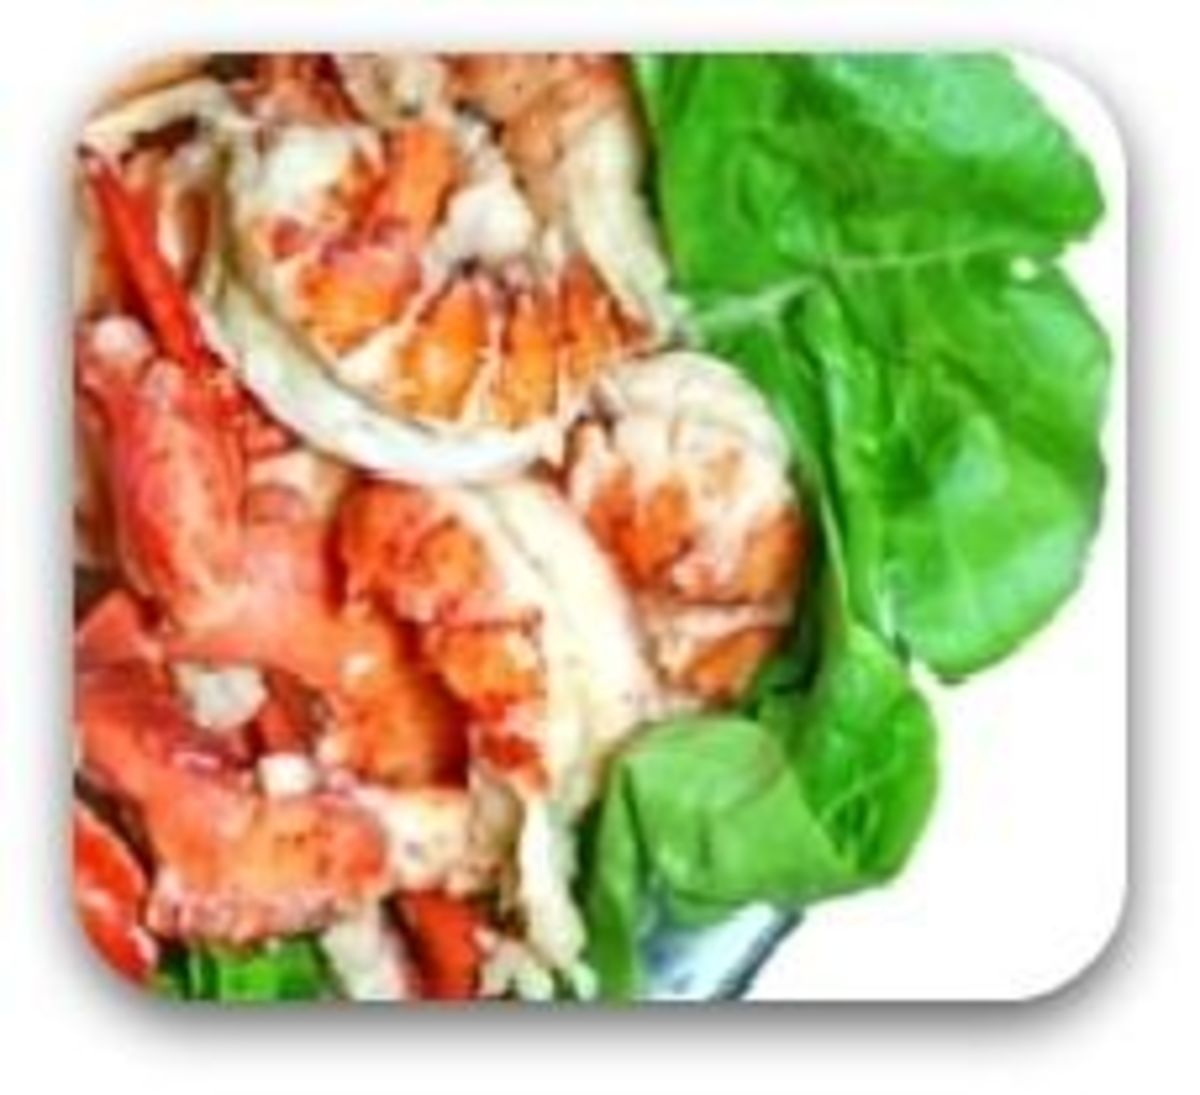 Lobster Meat on Lettuce